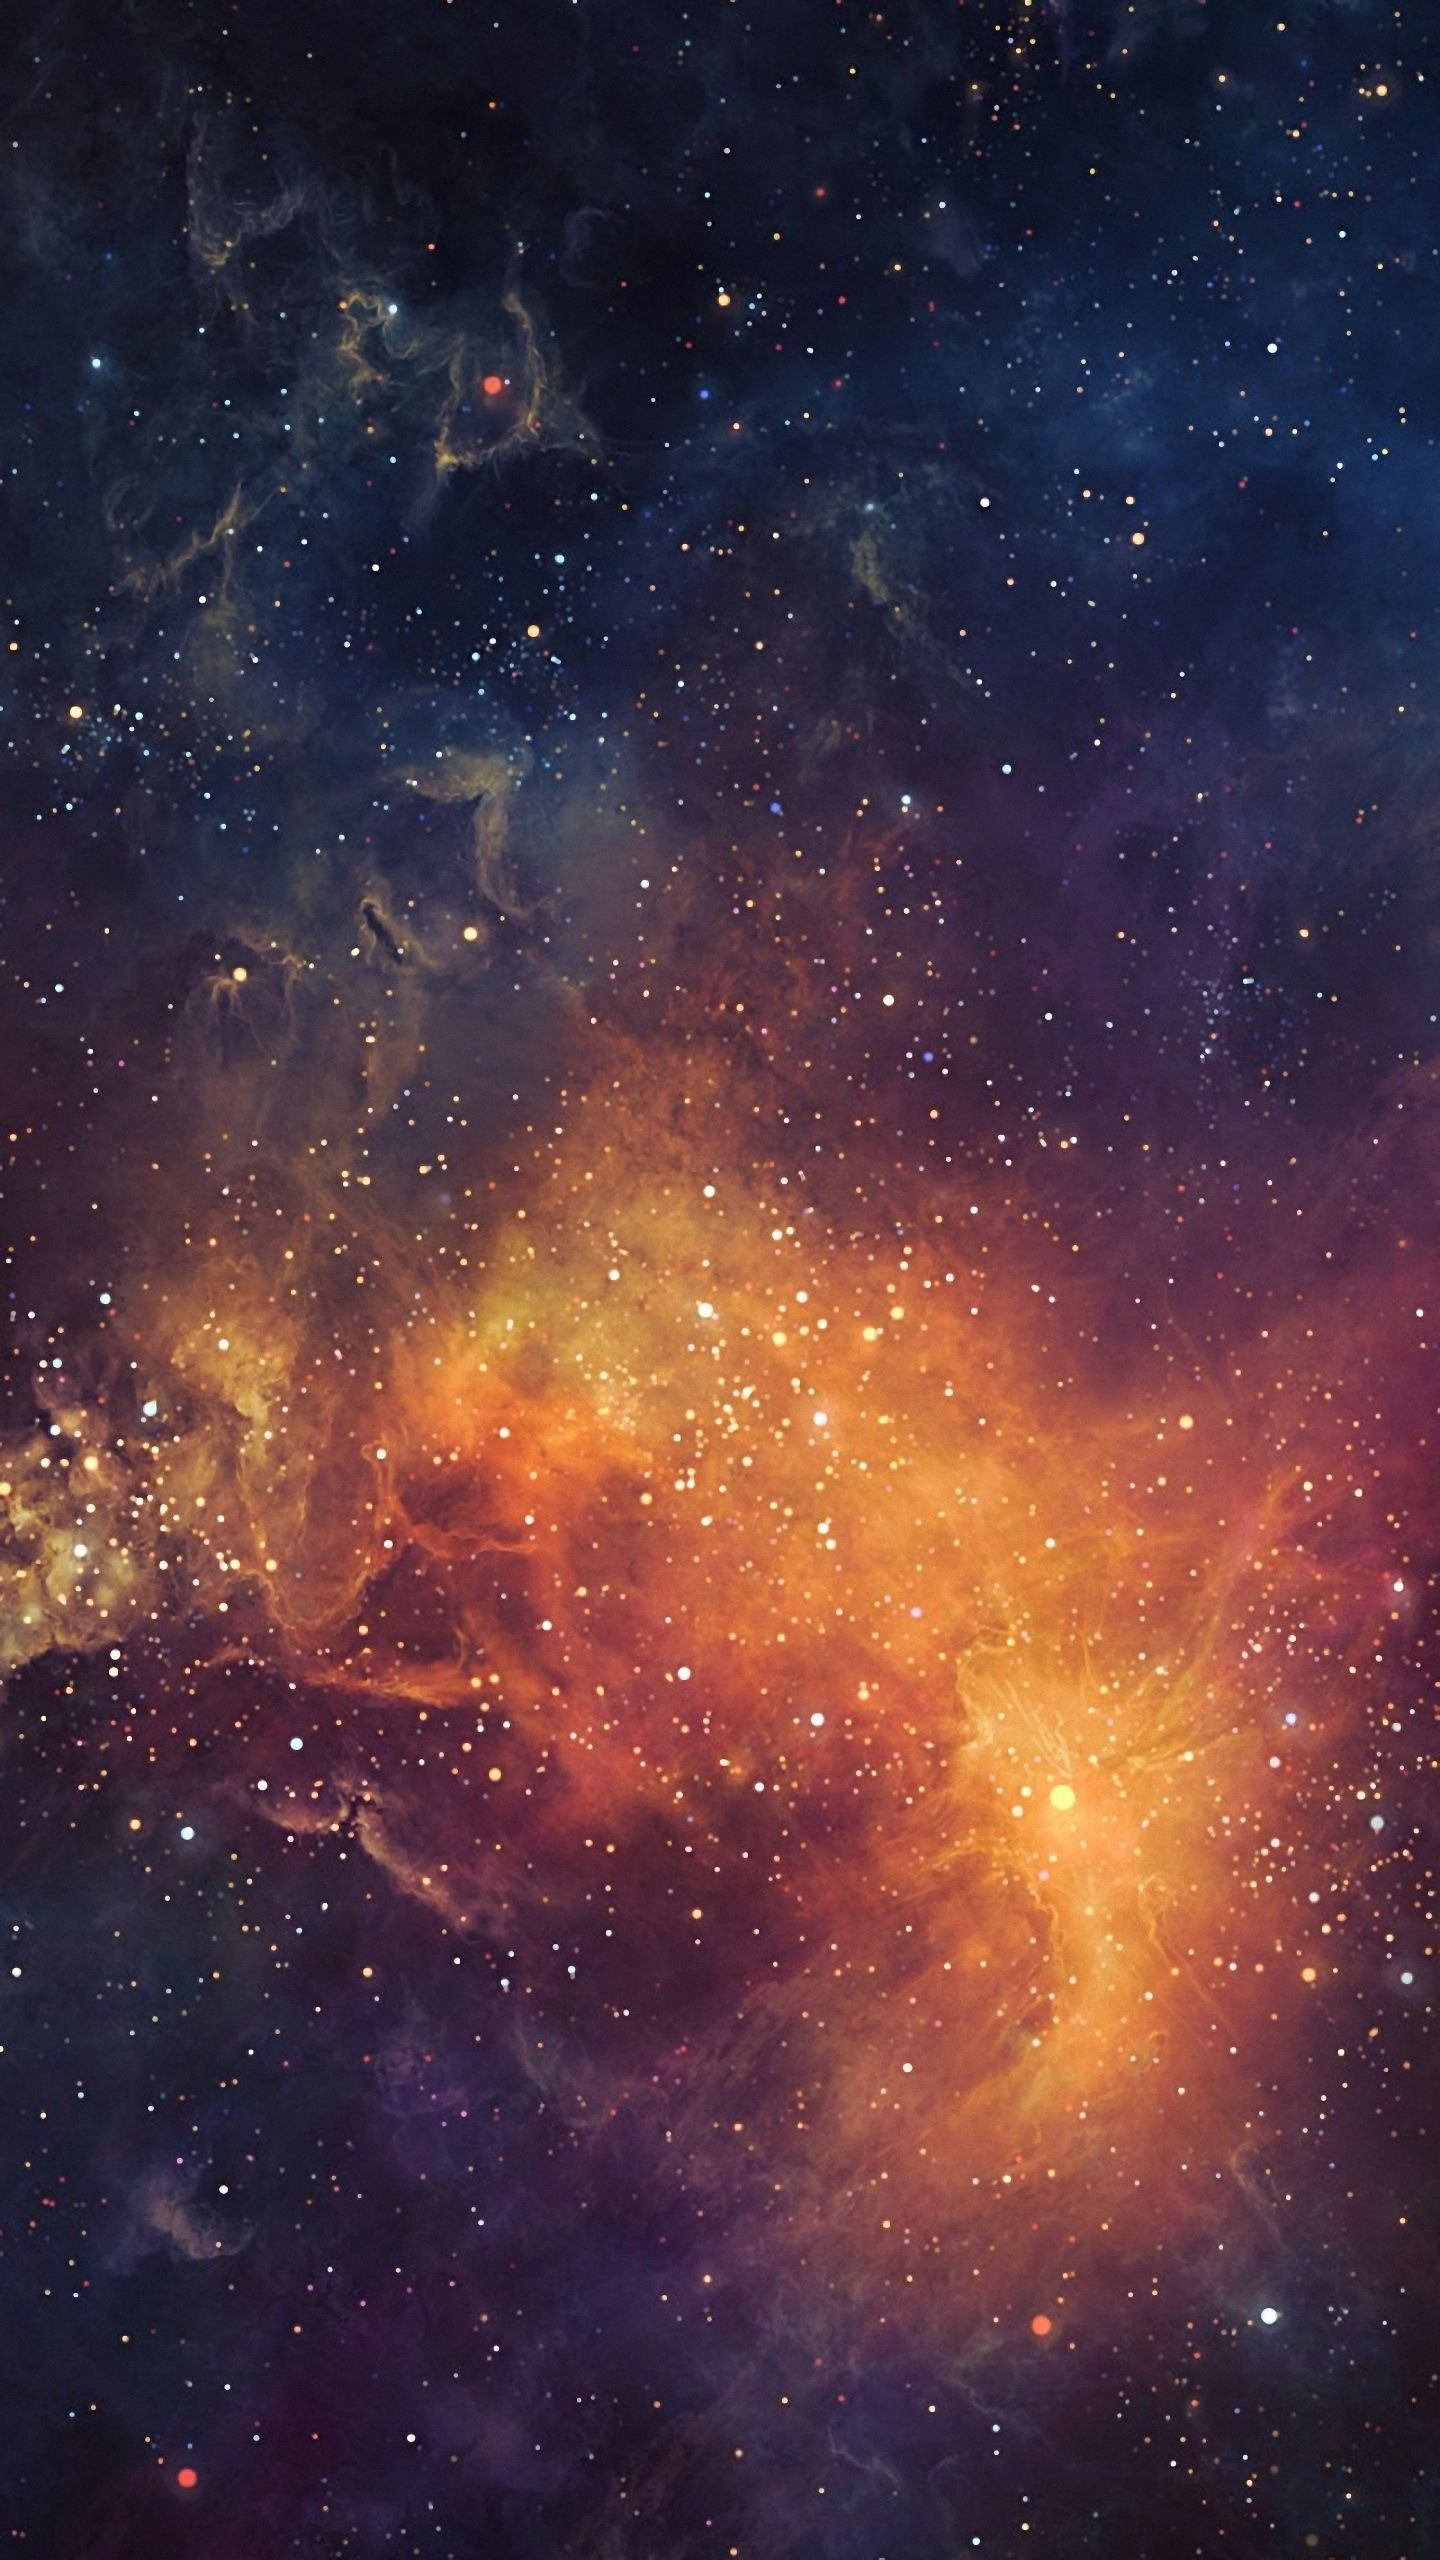 HD 1440x2560 excalibur xiaomi mi5 wallpapers | OoF | Galaxy wallpaper, Astronomy, Outer space